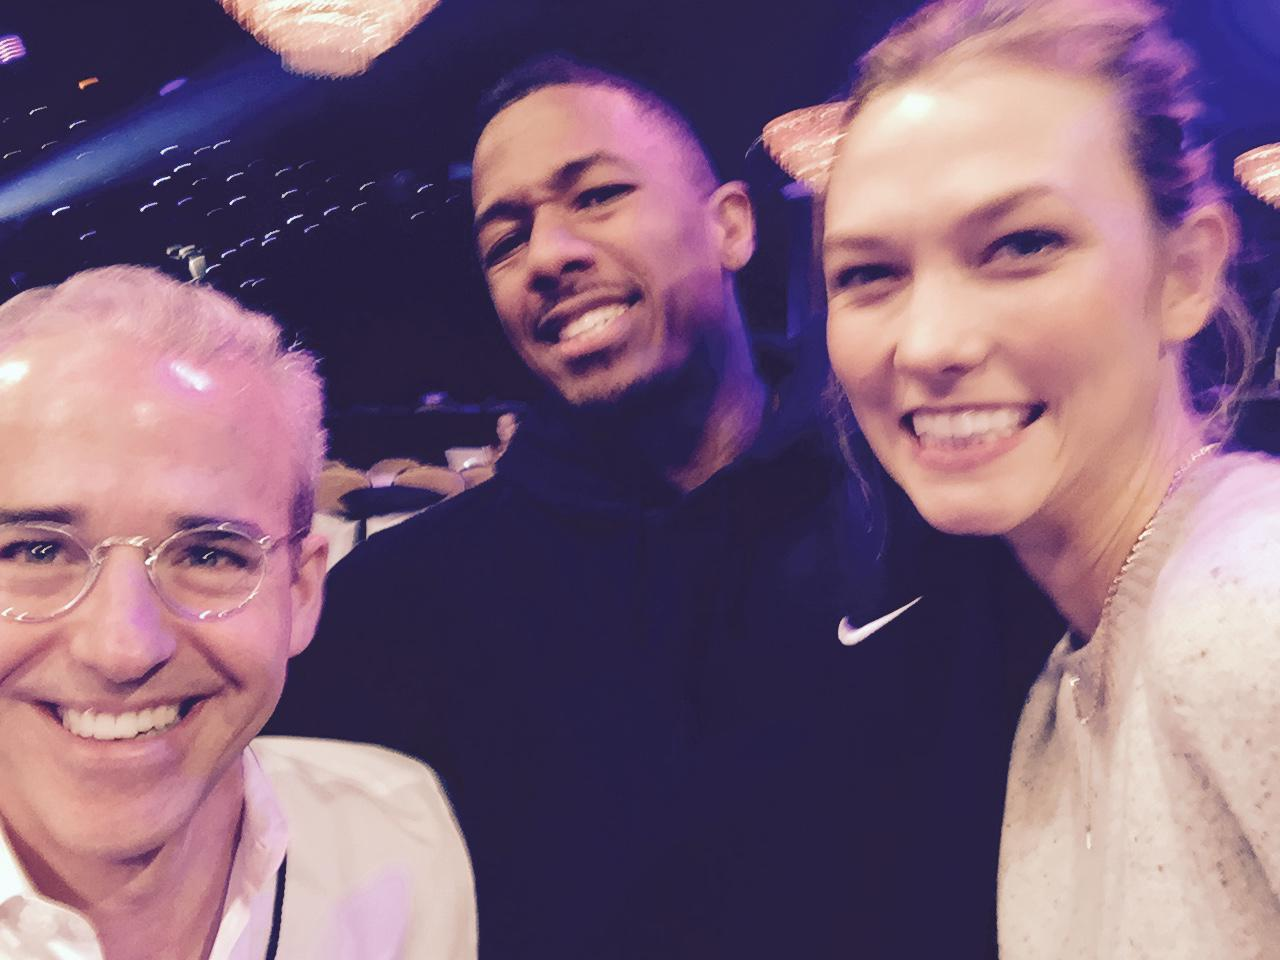 RT @MrJessCagle: My pals @nickcannon and @karliekloss so much taller than me at #PeopleMagazineAwards! 9ET on NBC @peoplemag @EW http://t.c…